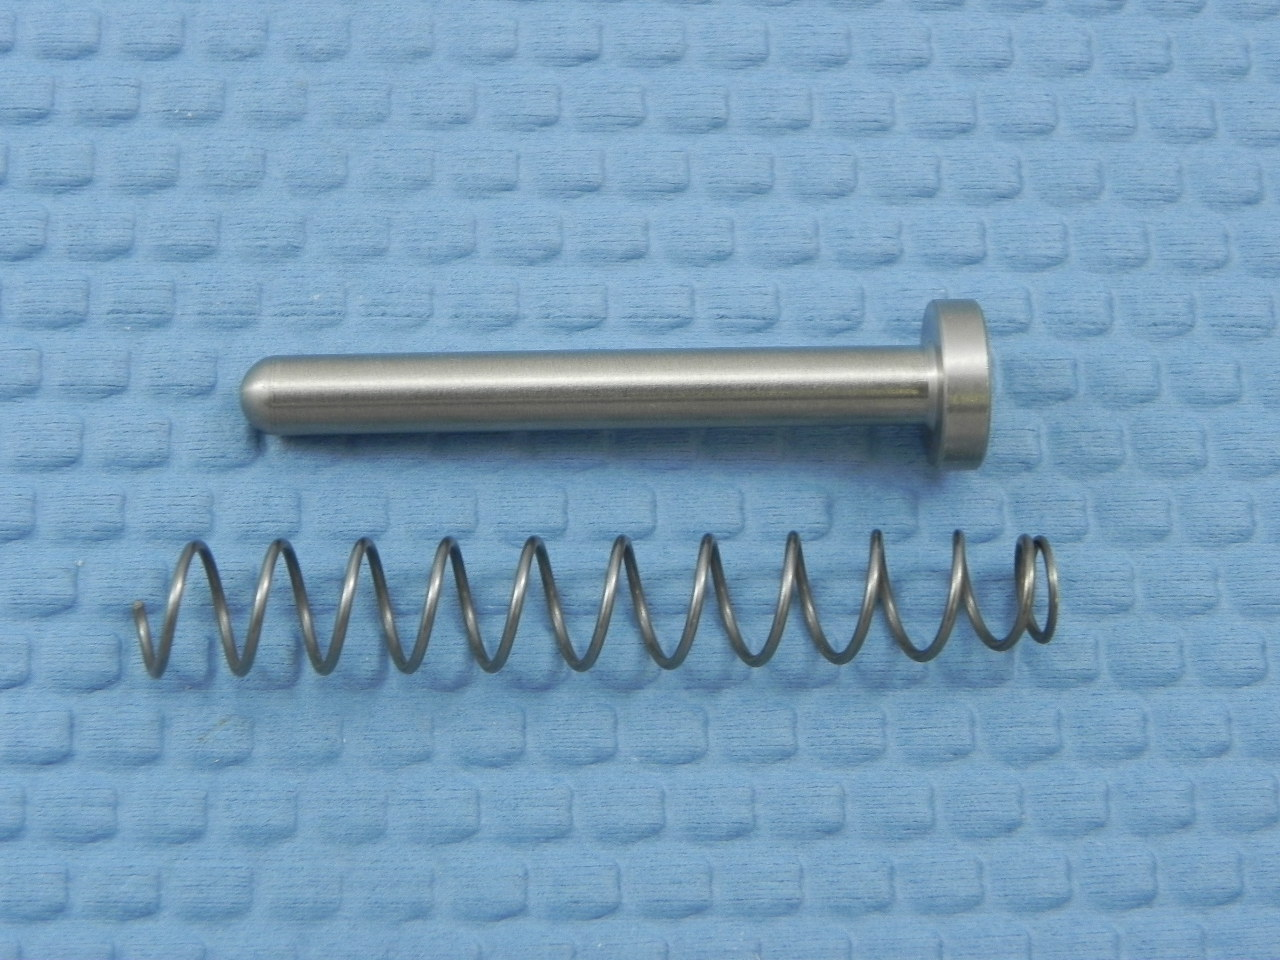 CS0325SET - 380 Colt Mustang/Pony Stainless Steel Guide Rod with Recoil Spring